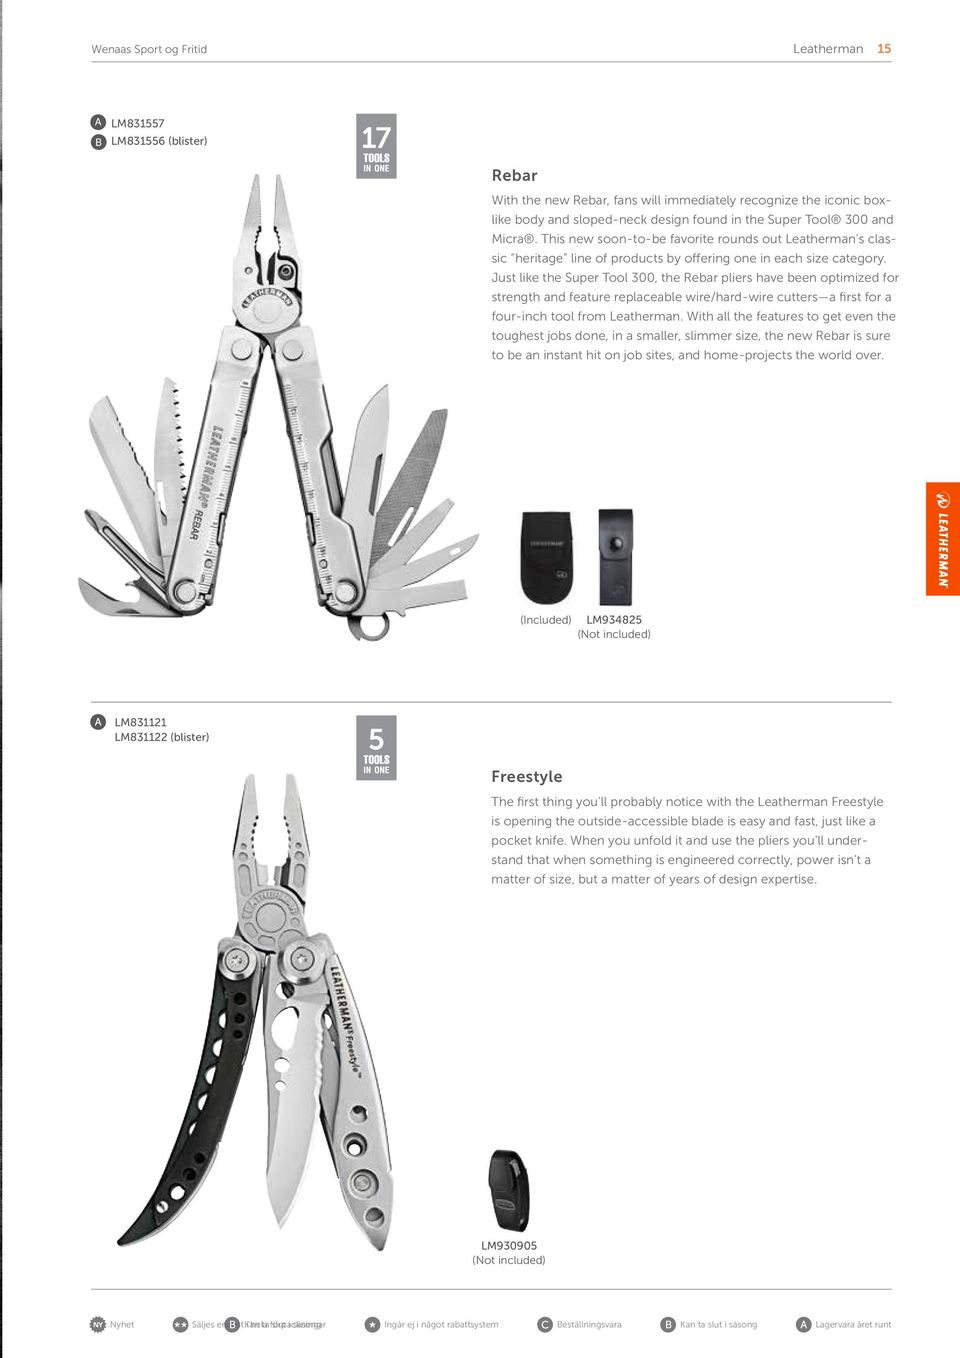 Just like the Super Tool 300, the Rebar pliers have been optimized for strength and feature replaceable wire/hard-wire cutters a first for a four-inch tool from Leatherman.